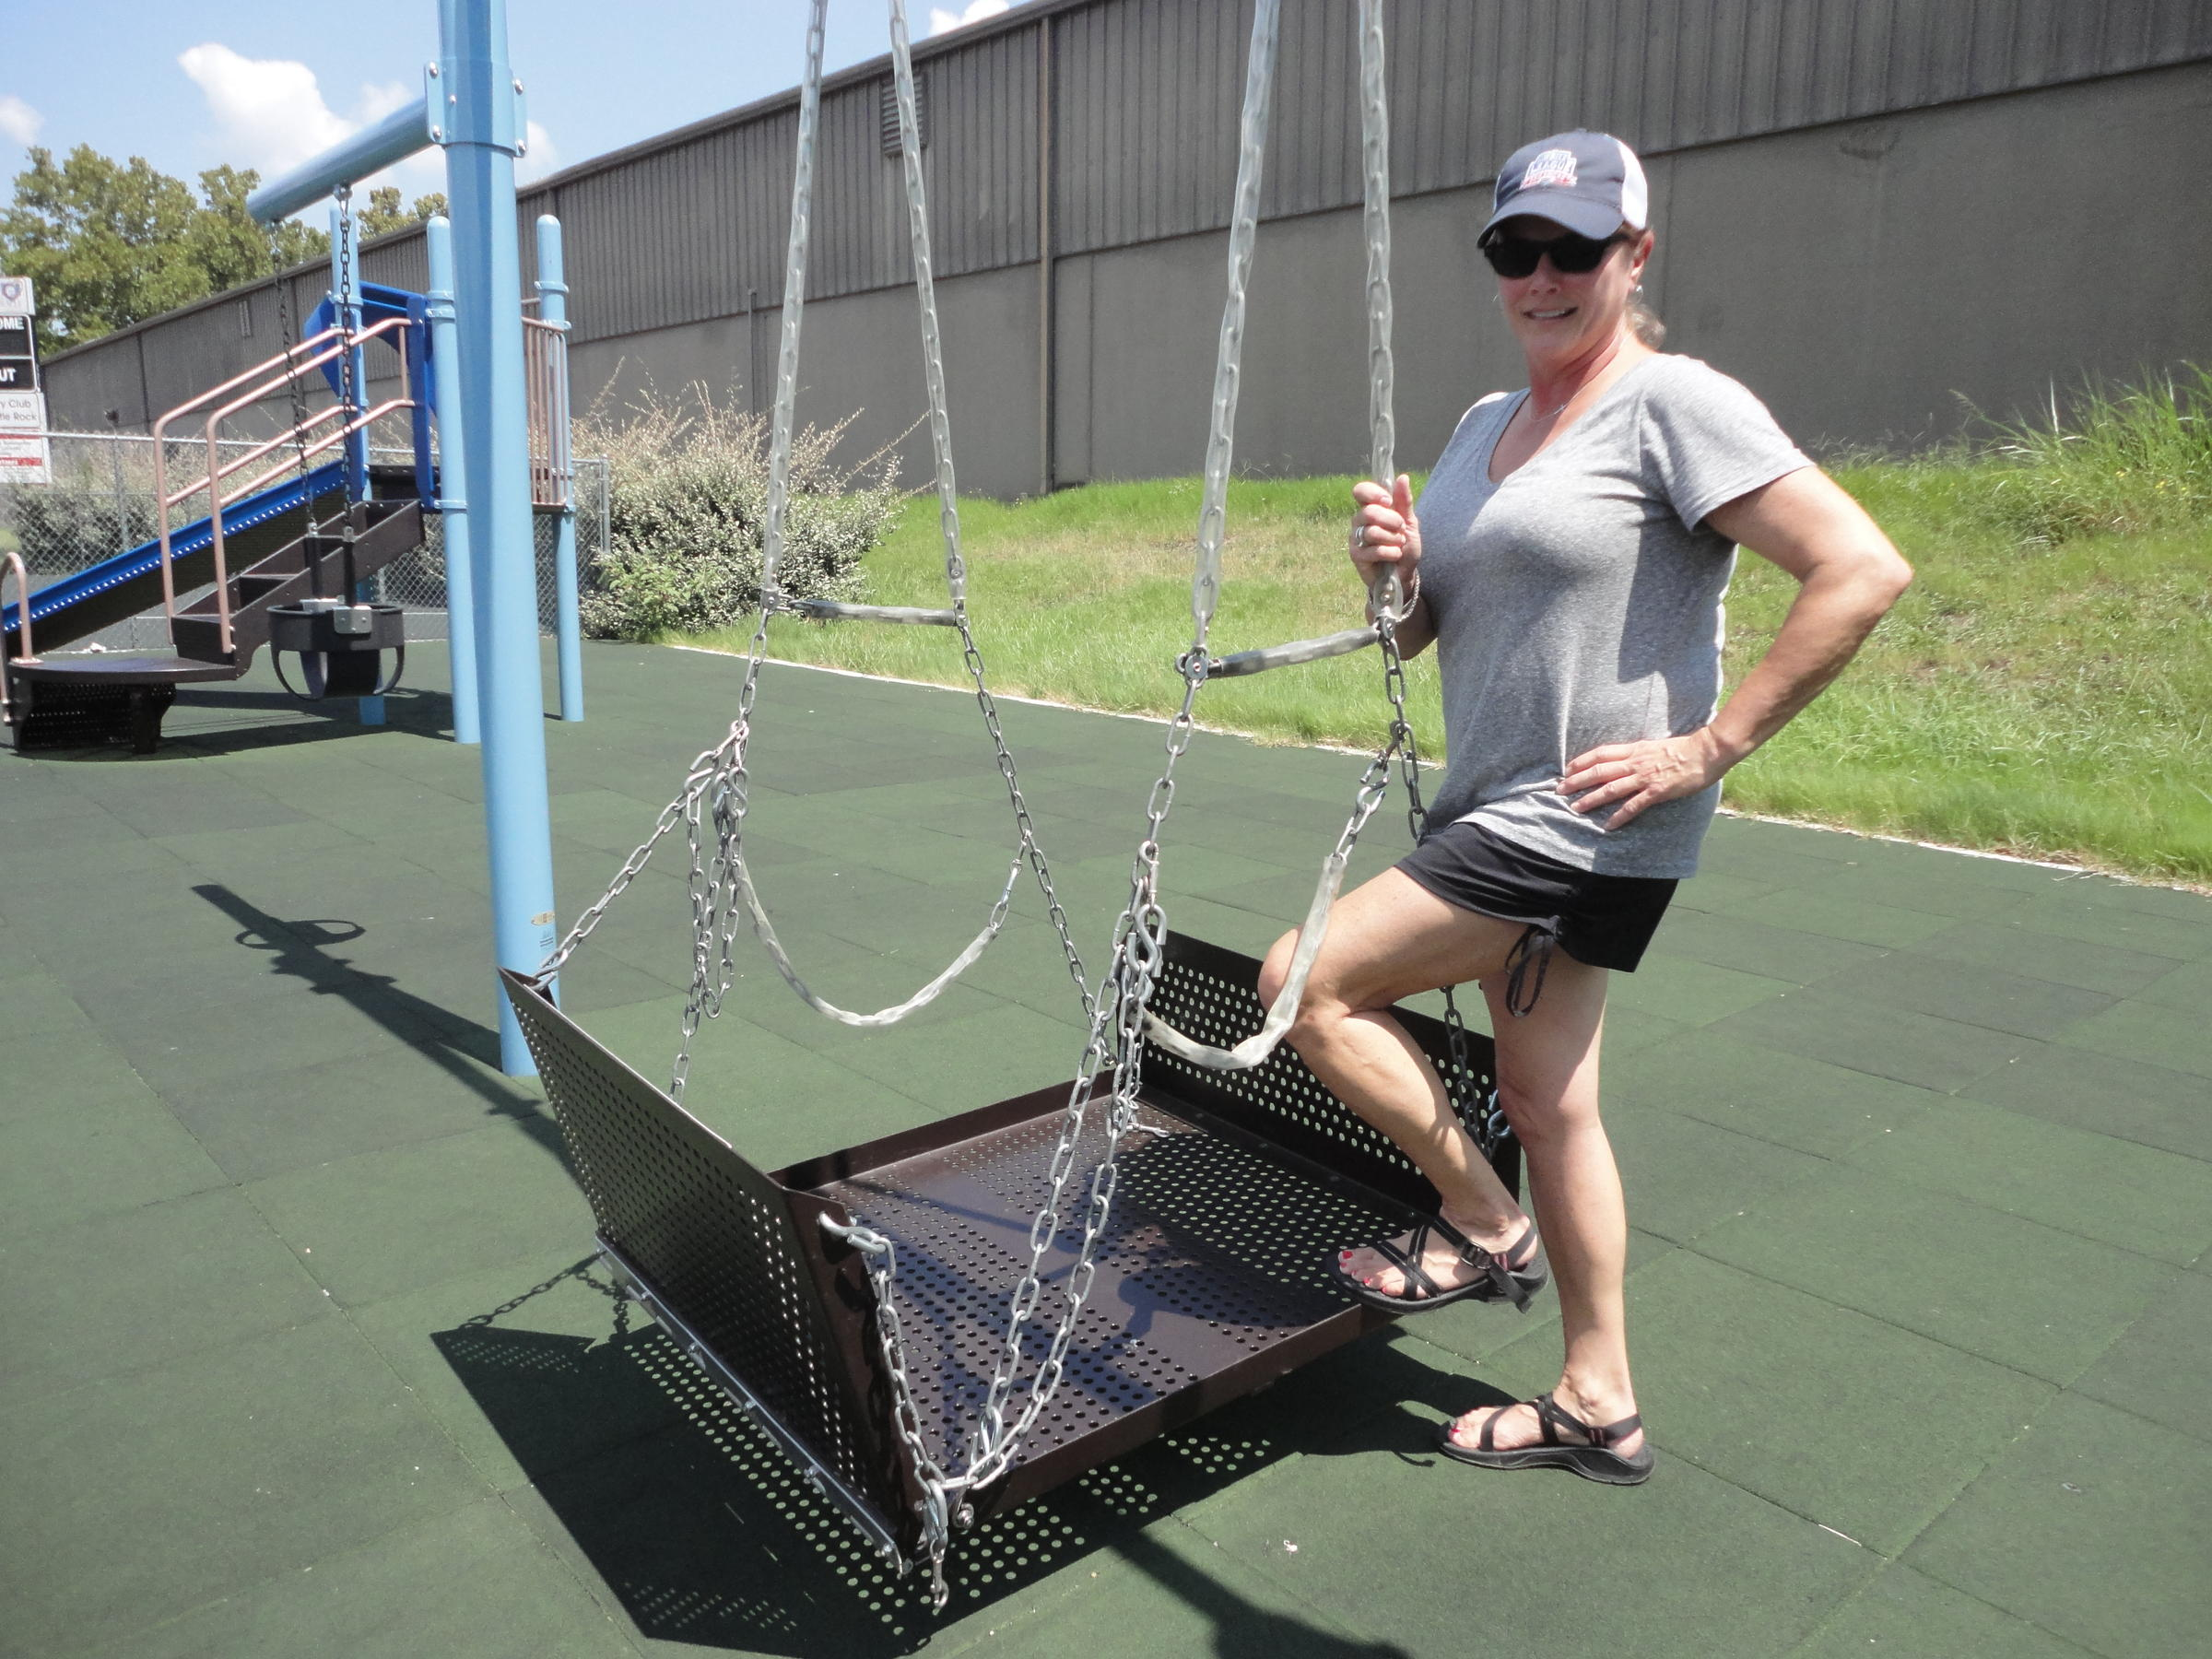 improved playgrounds and ball fields allow disabled kids to play